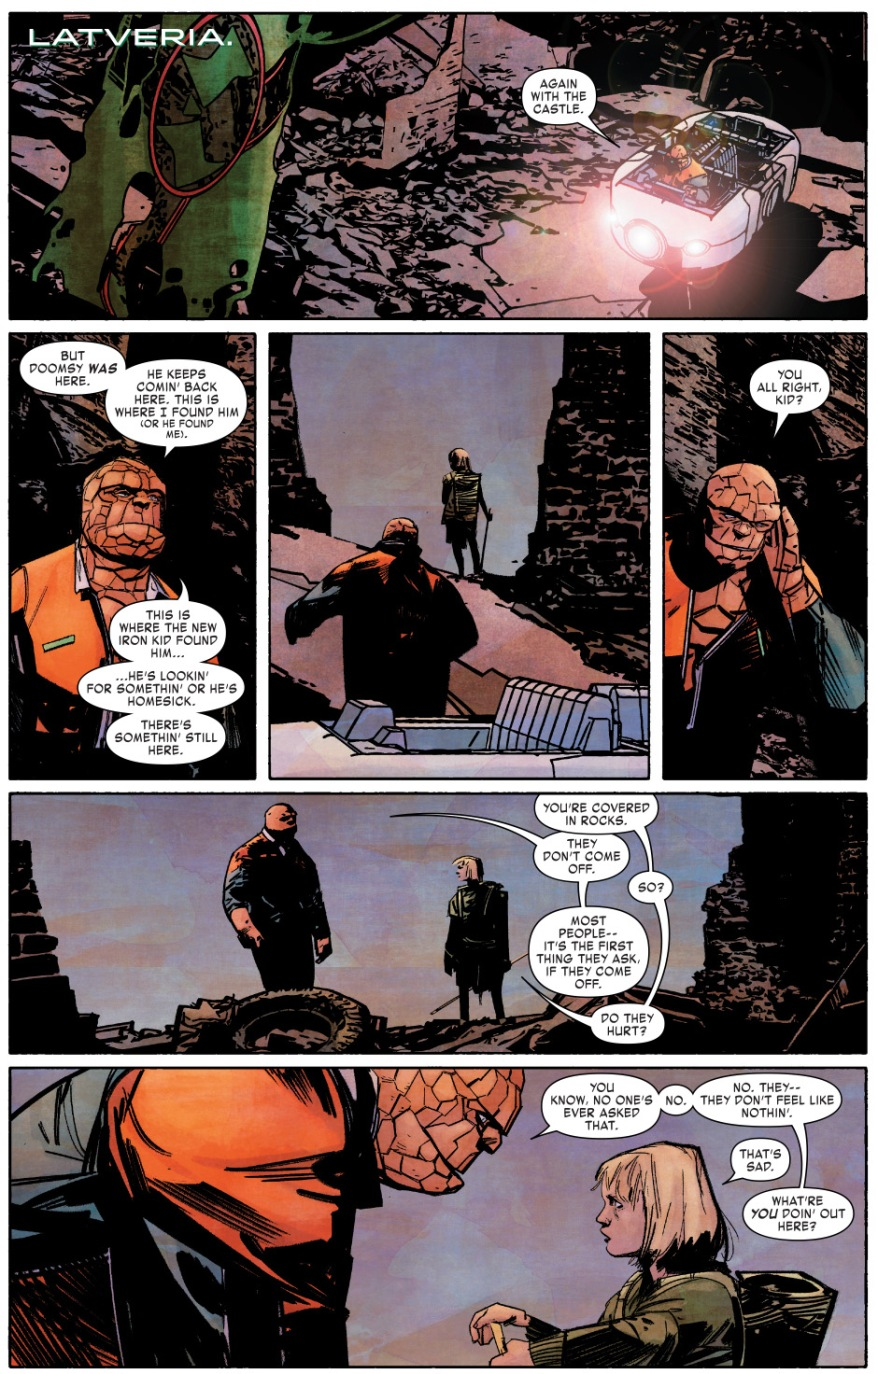 Latveria Loves Doctor Doom (Infamous Iron Man)